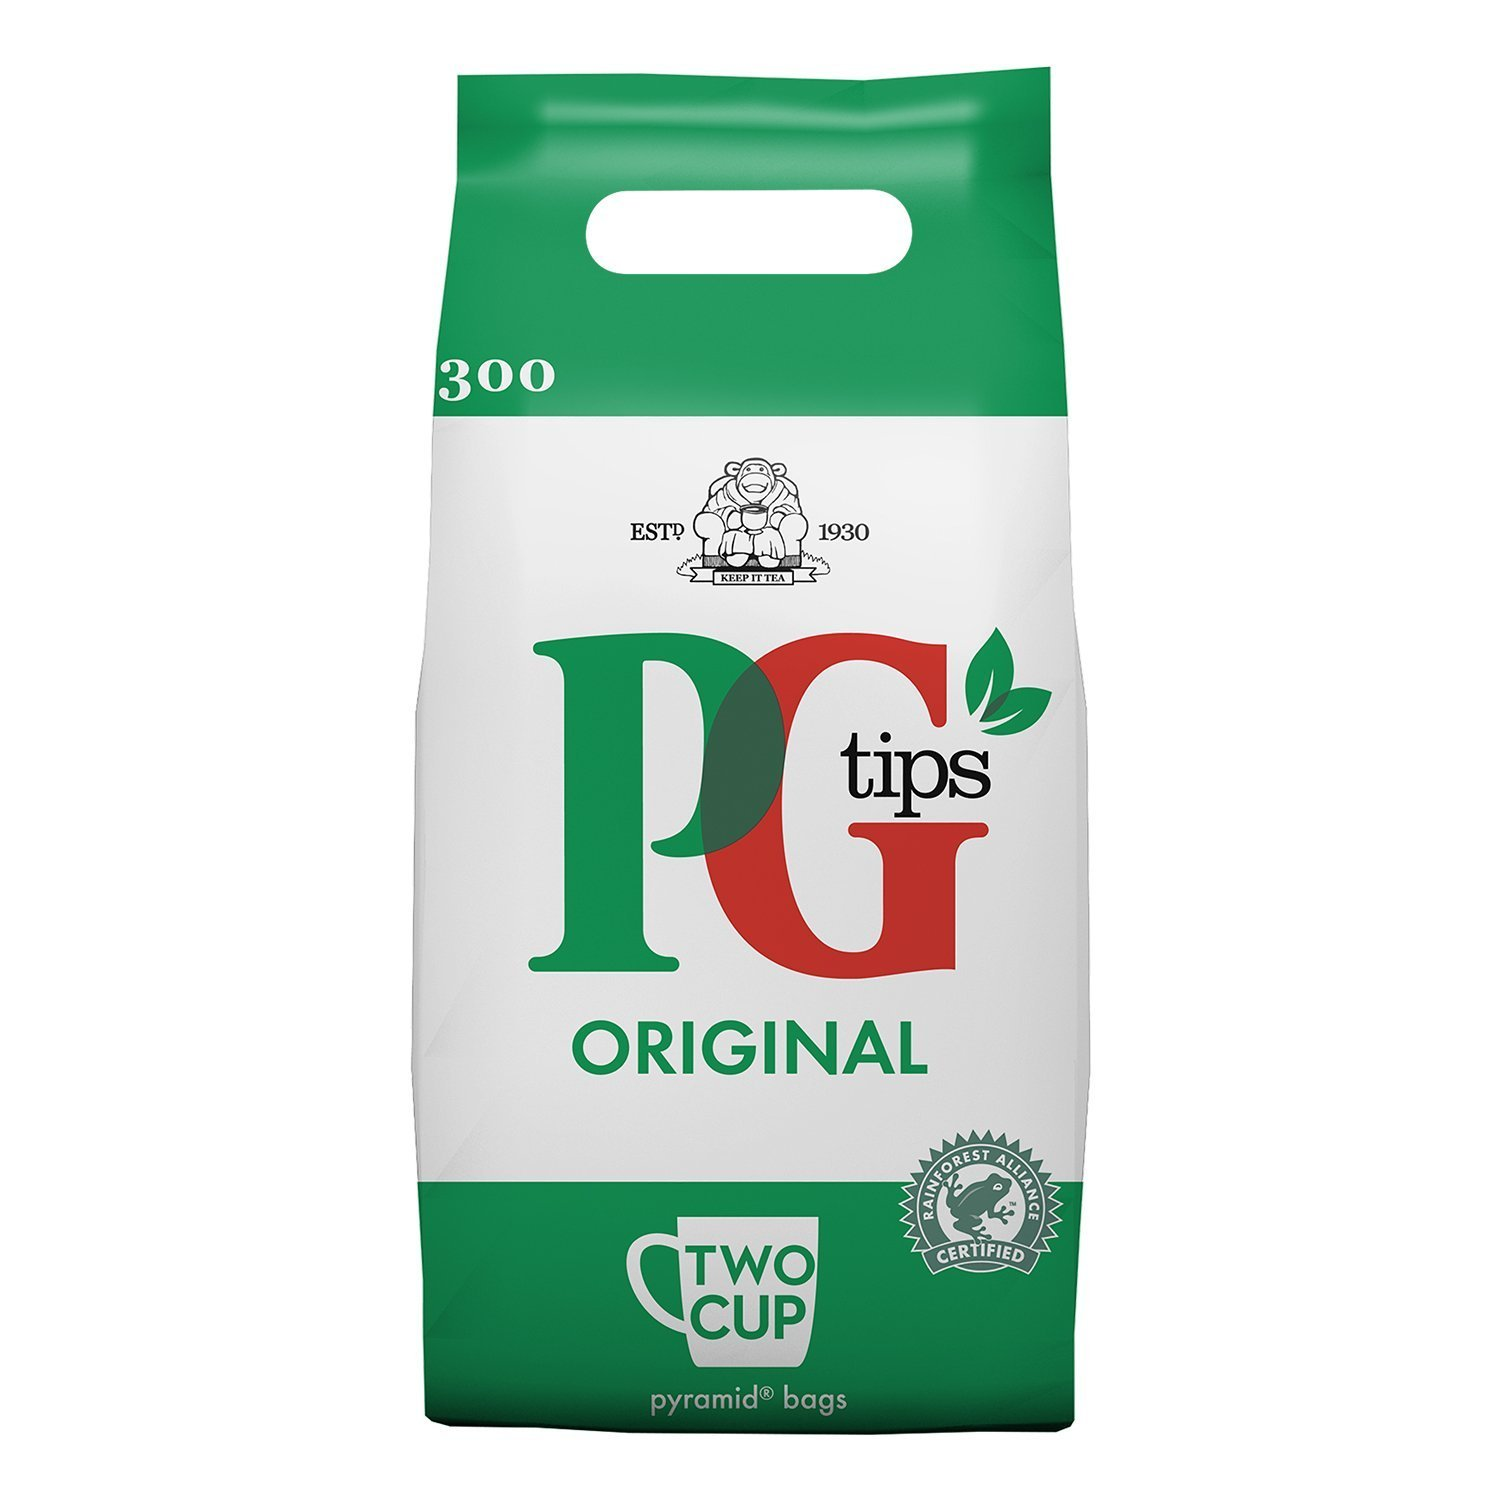 PG Tips 300 Two Cup Stronger Catering Tea Bags Case Of 8